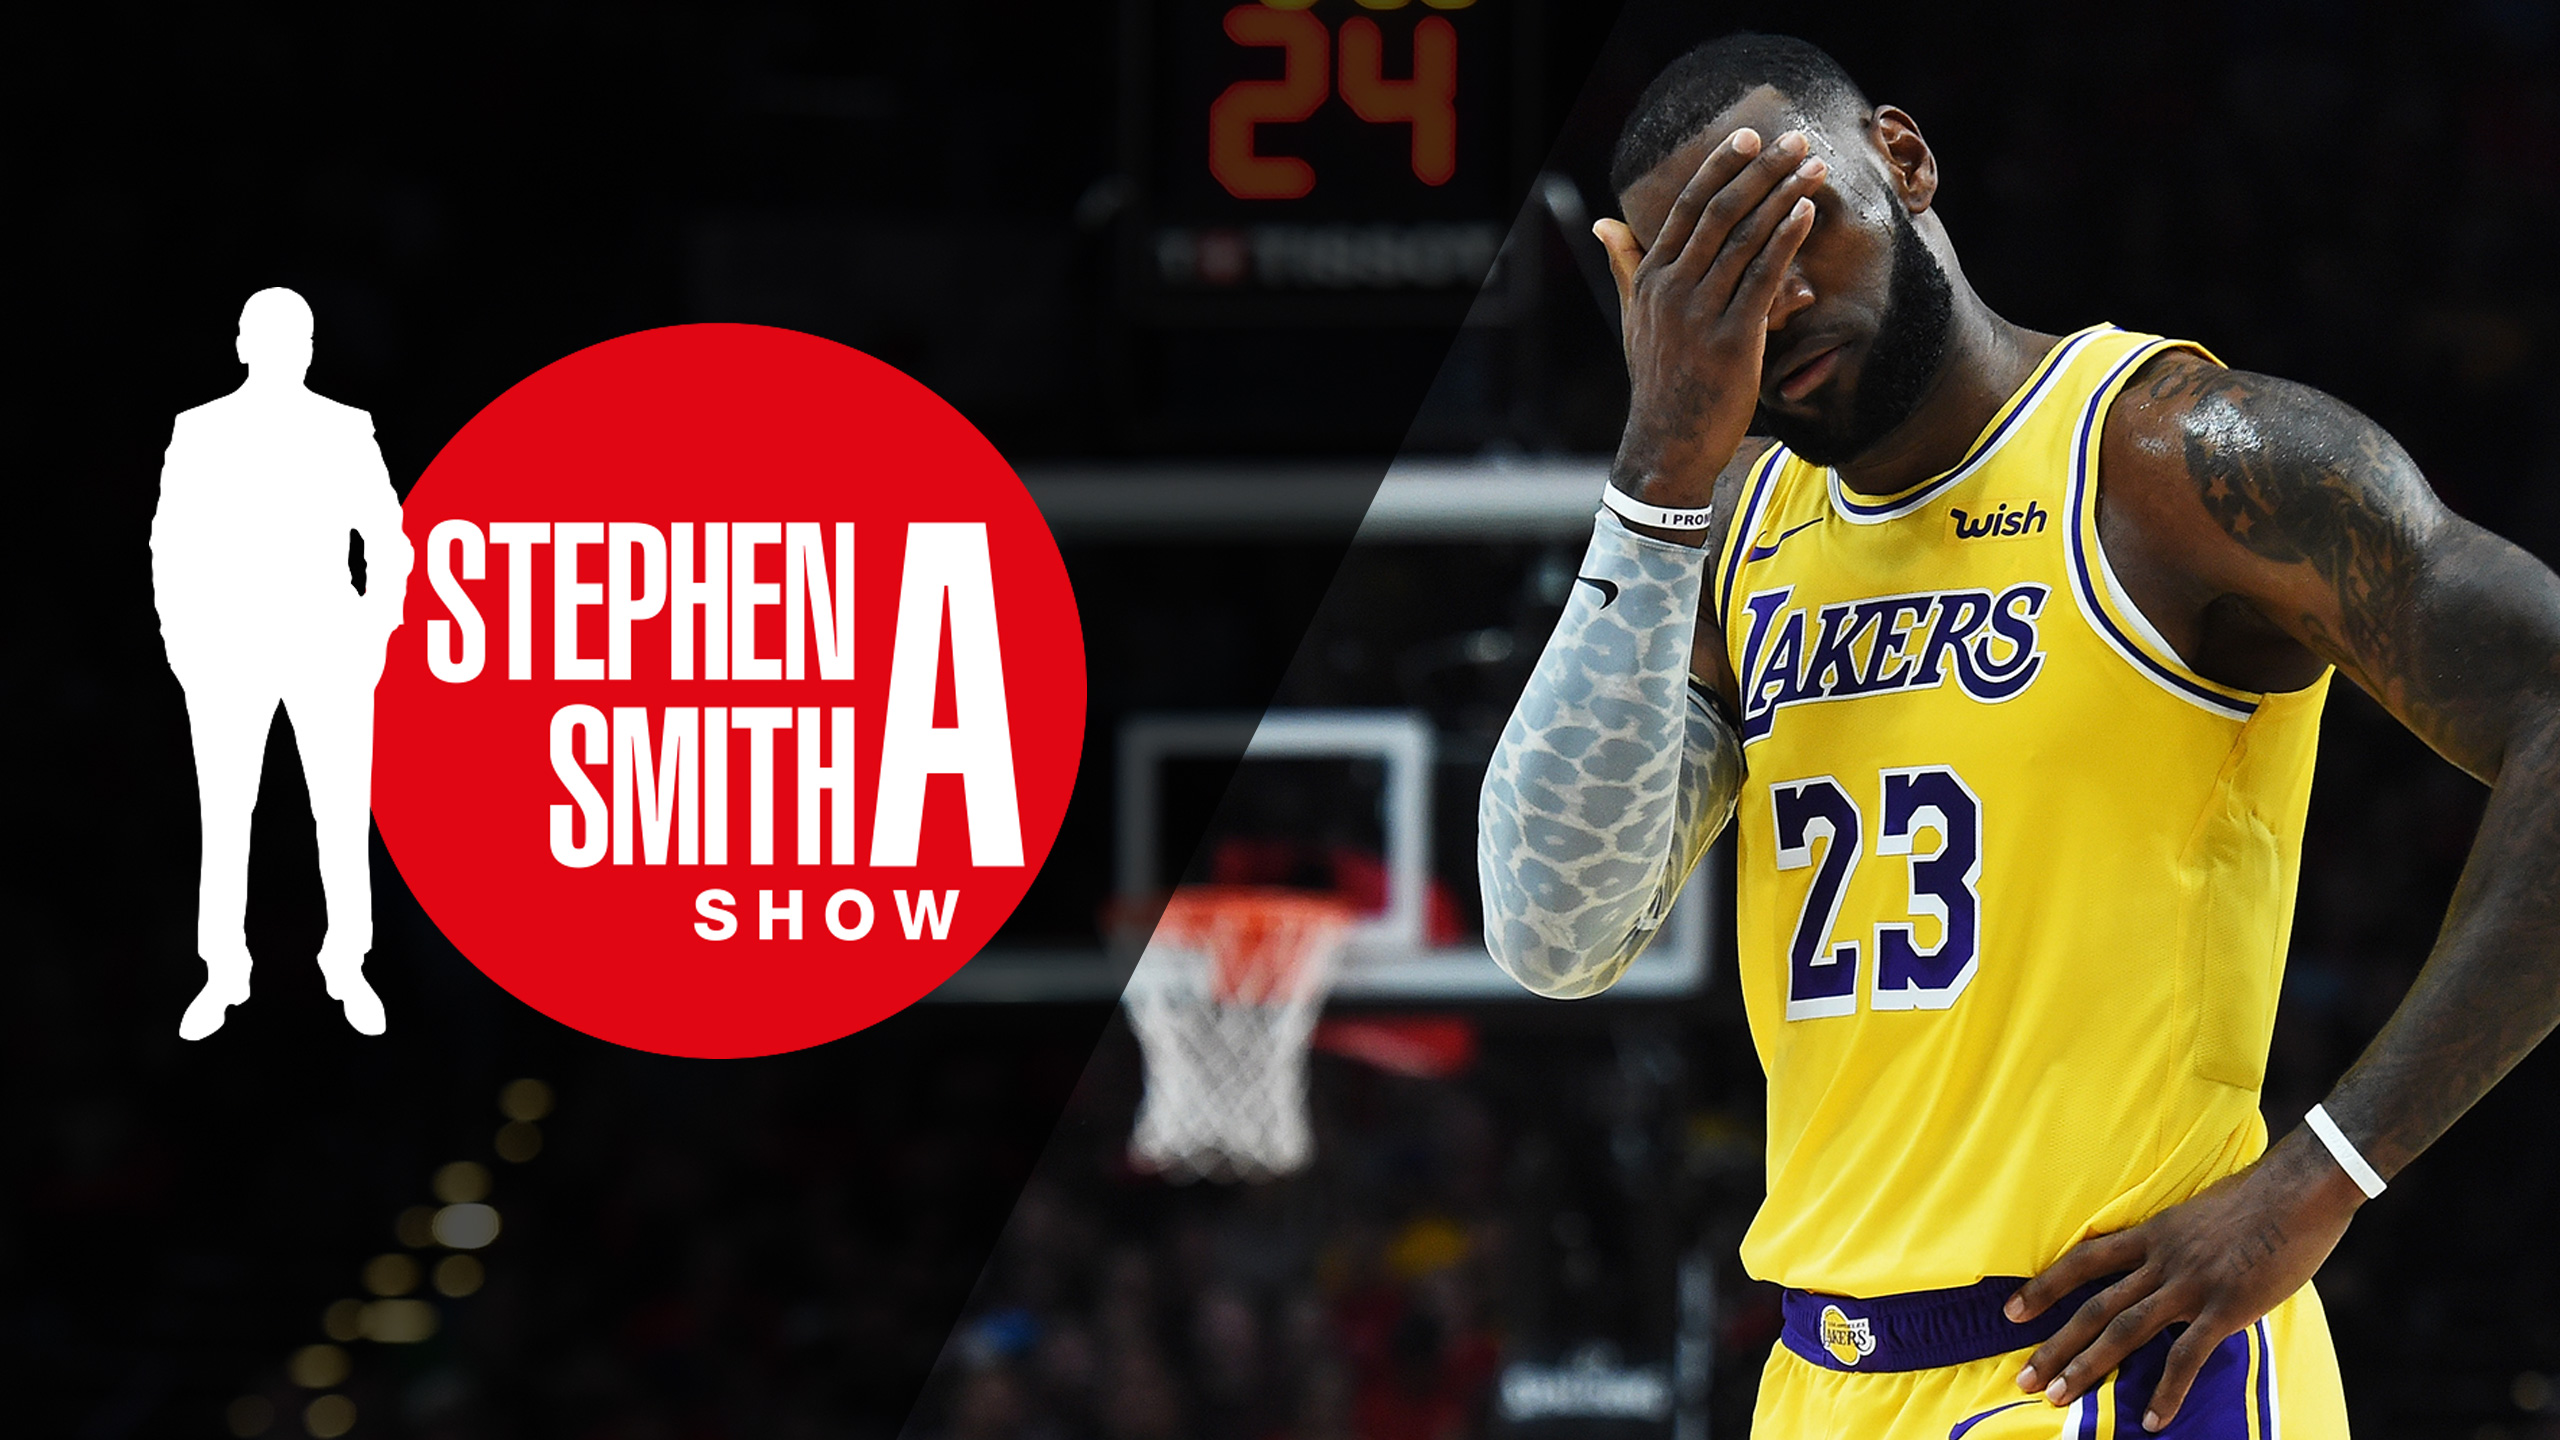 Fri, 10/19 - The Stephen A. Smith Show